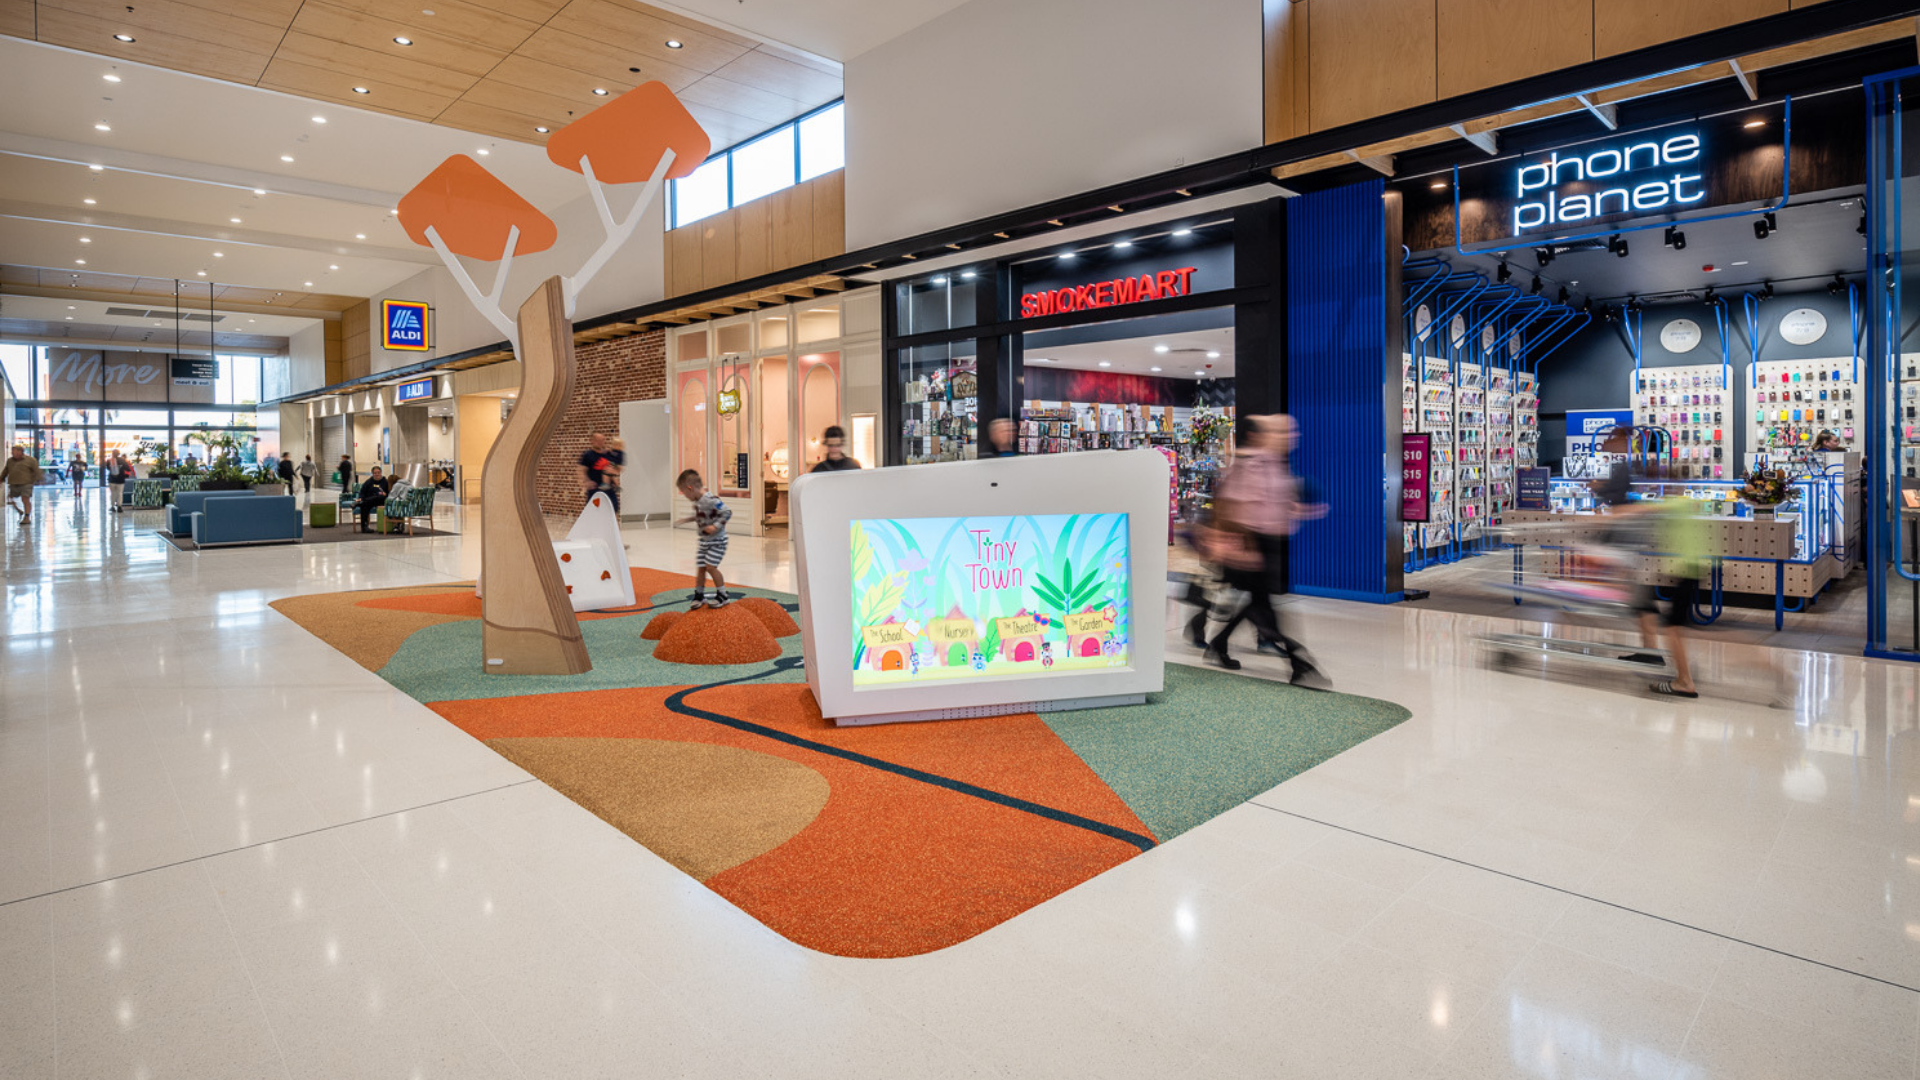 Port Adelaide Plaza Childrens Play Area